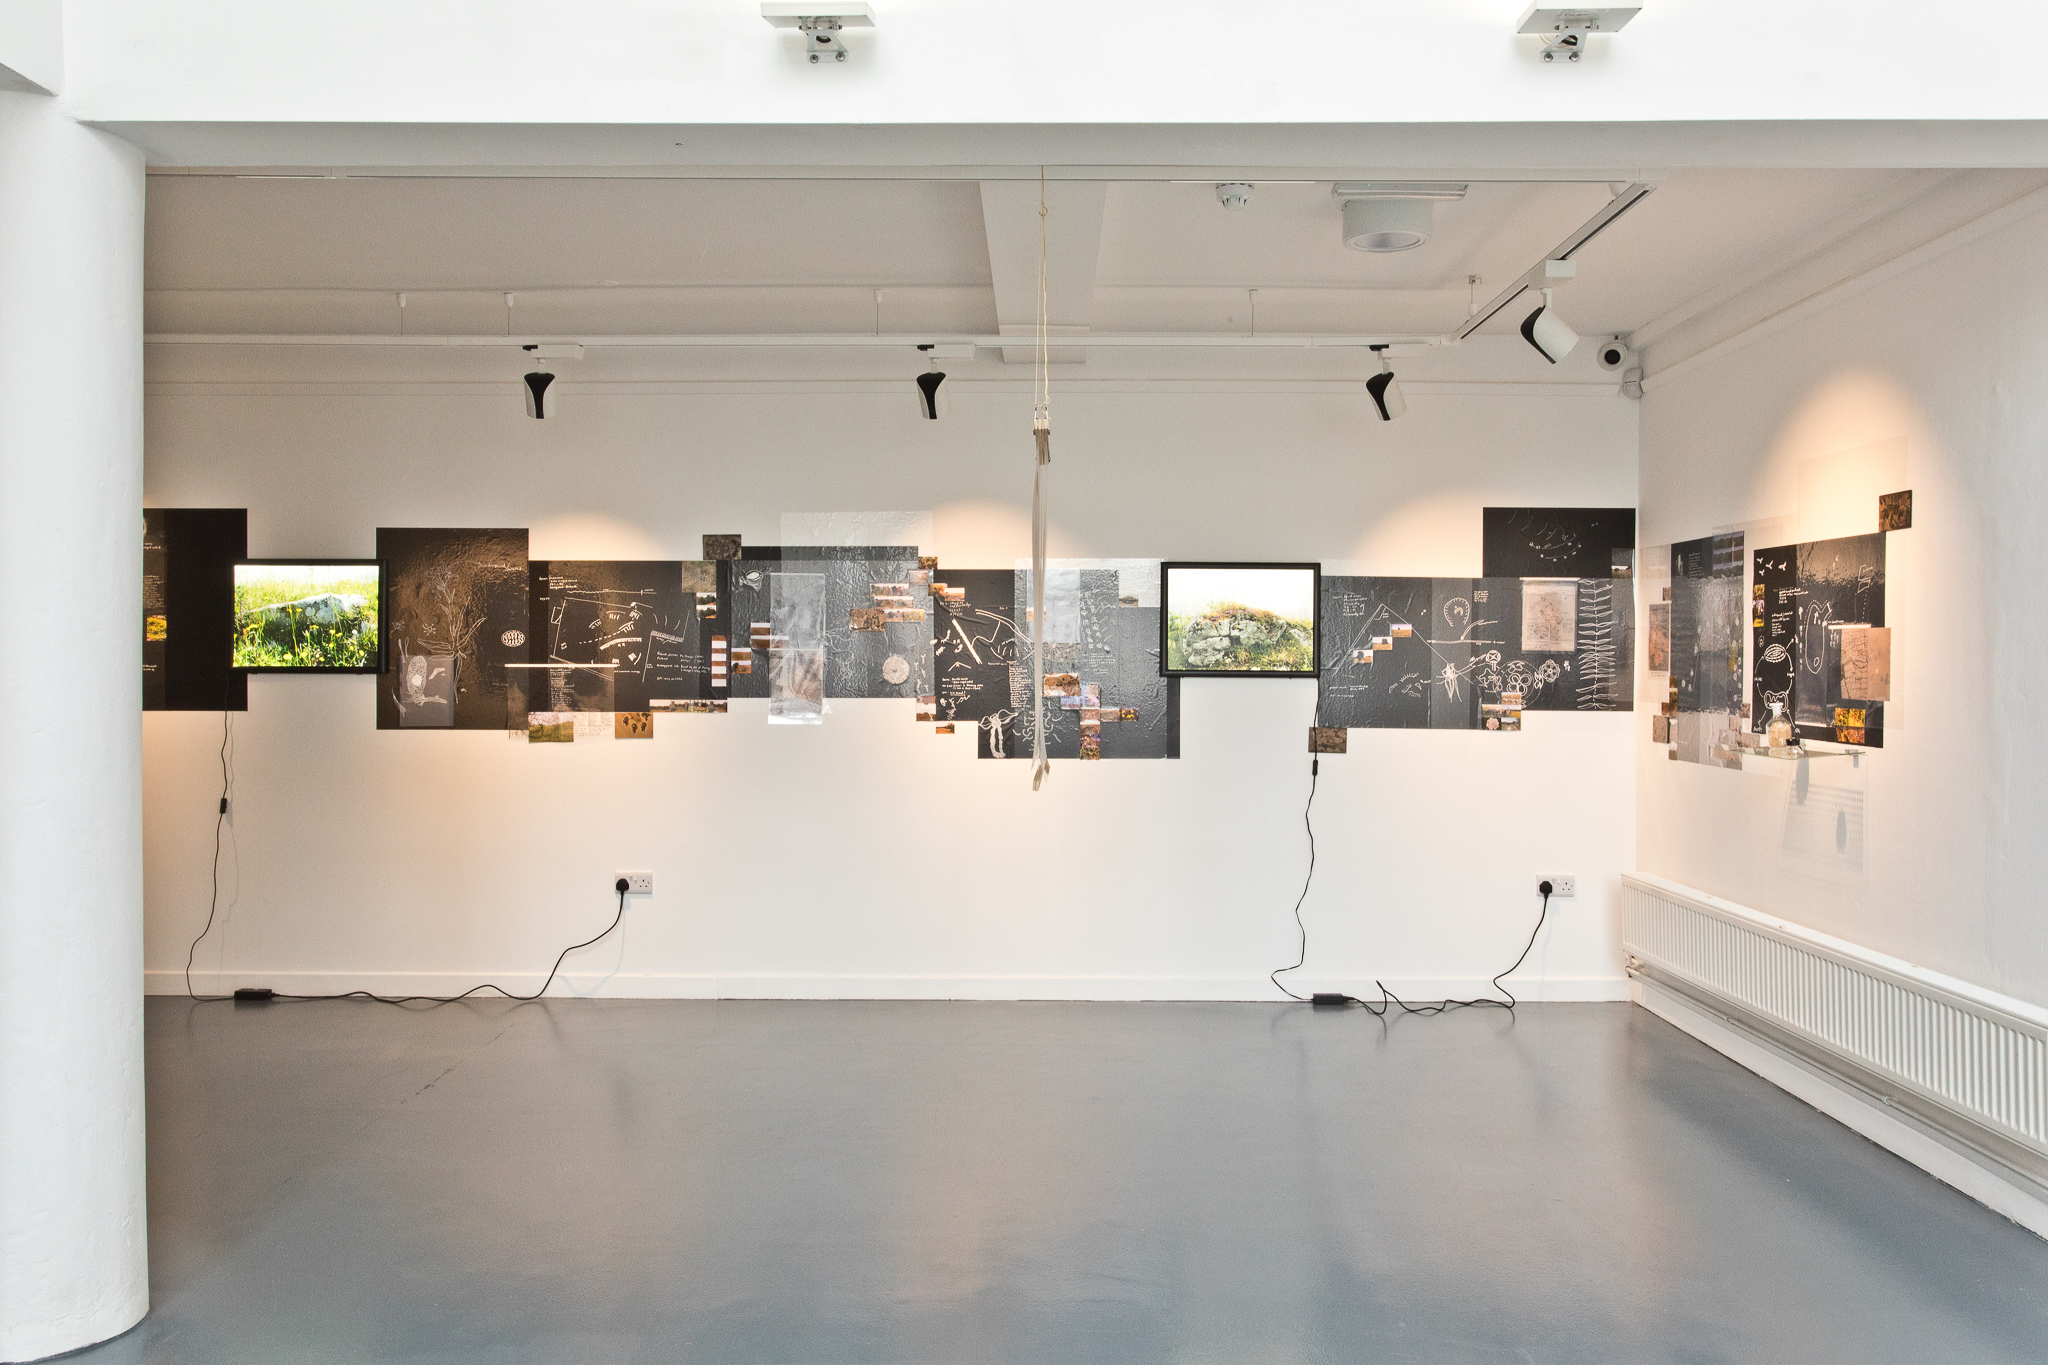 Christine Mackey, Outcropping,2021.  Installation combining drawings, photographs, film and objects